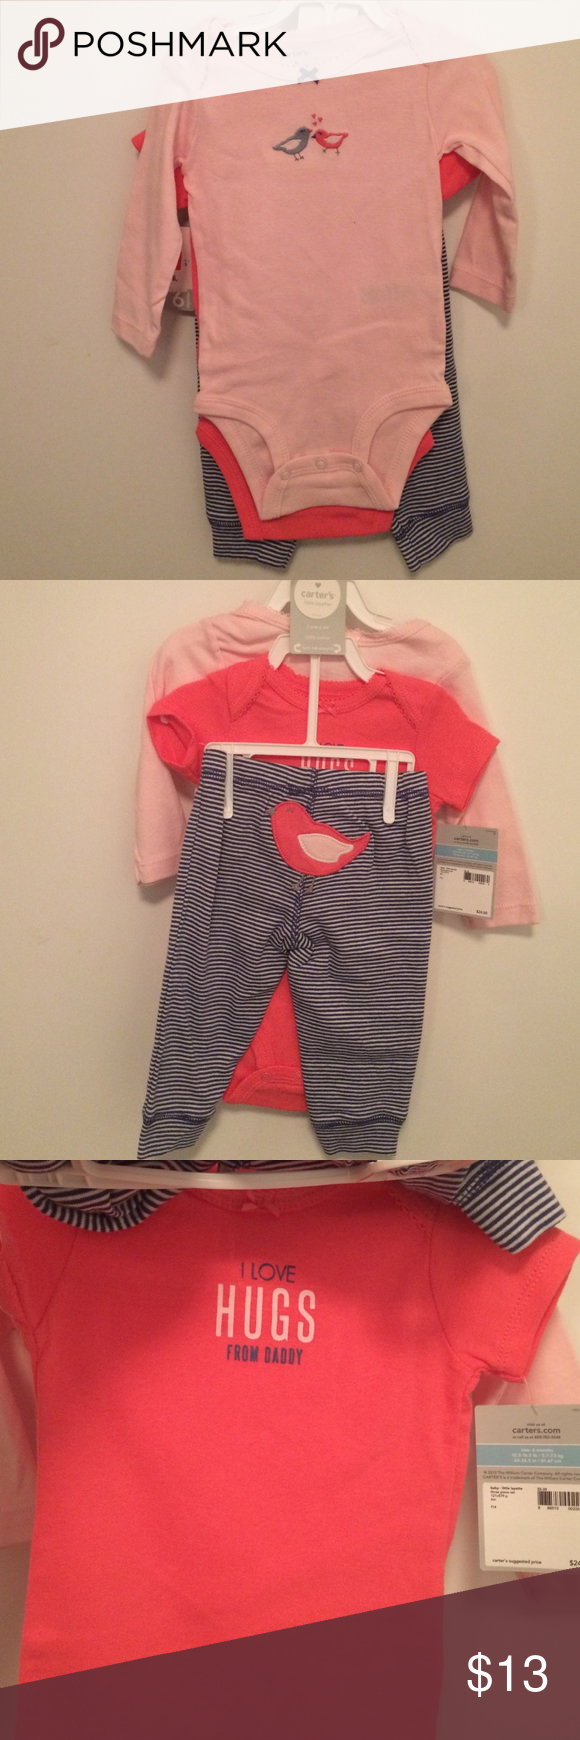 BNWT 3pc set from Carters. Size 6mos Selling this cute 3pc set from Carters size 6mos. BNWT Carter's Matching Sets